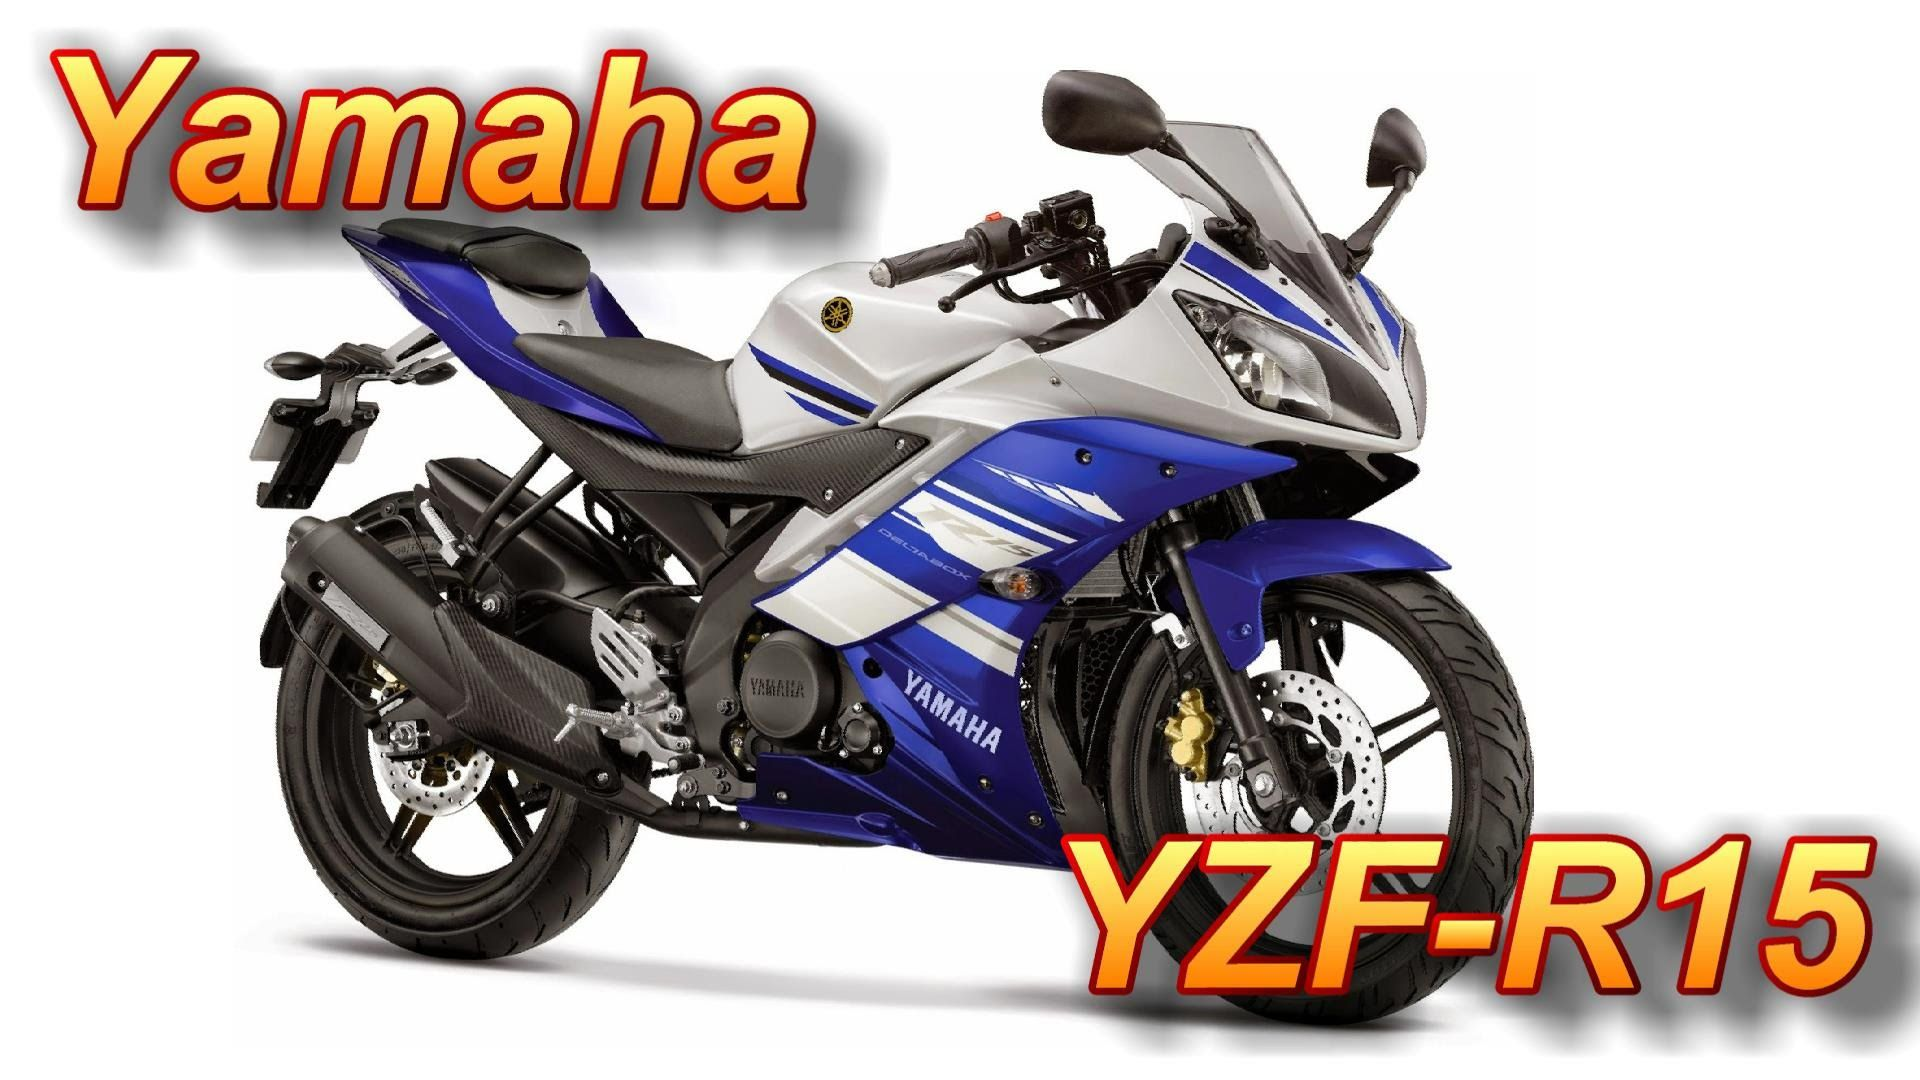 New Yamaha R15 Price In Malaysia Encouraged To The Blog Site With